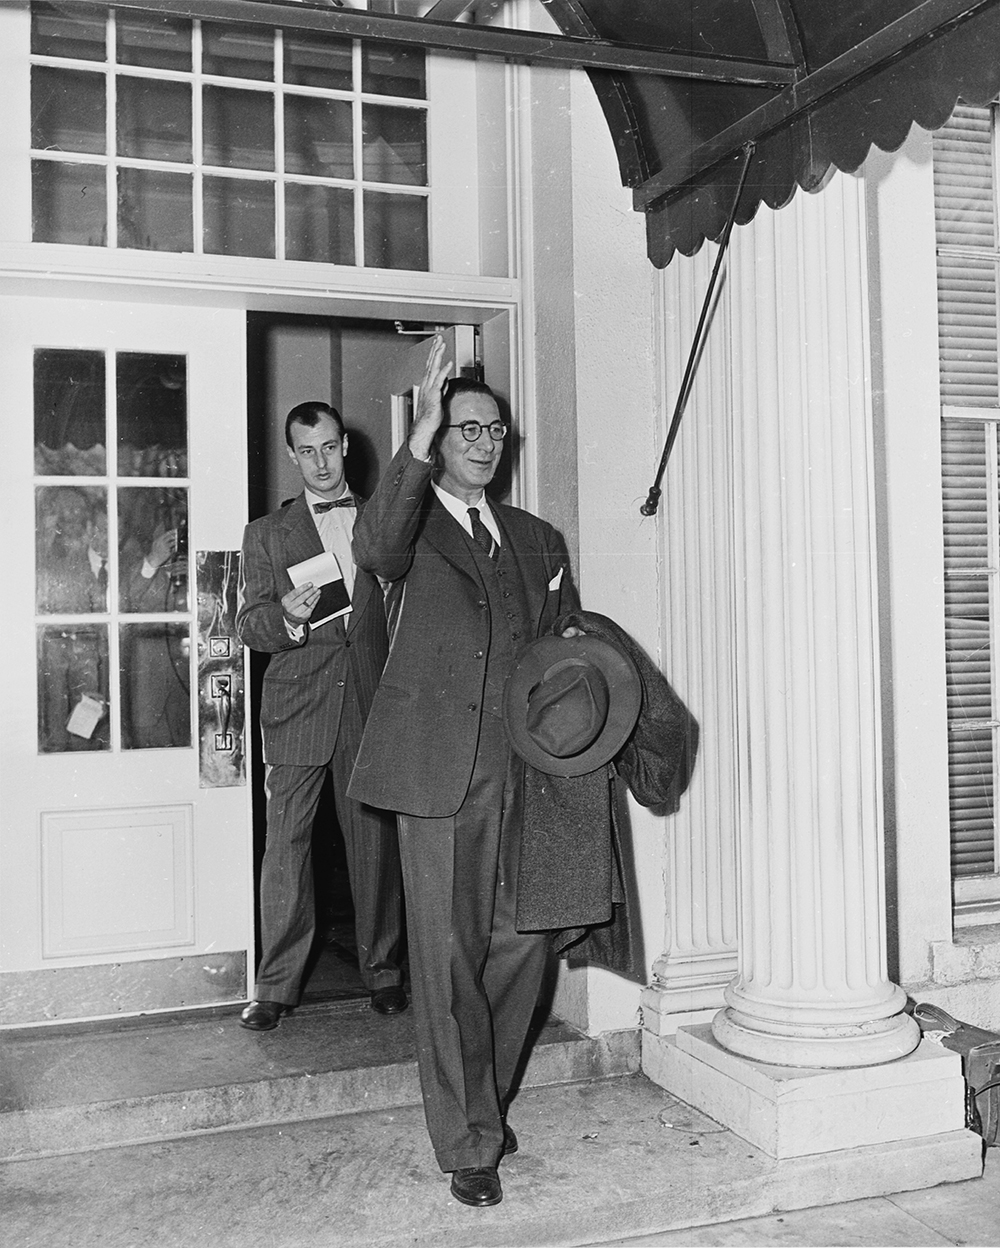 Senator Estes Kefauver of Tennessee leaving the White House after a meeting with President Truman, 1952. Photograph by Abbie Rowe. Wikimedia Commons, National Archives and Records Administration.